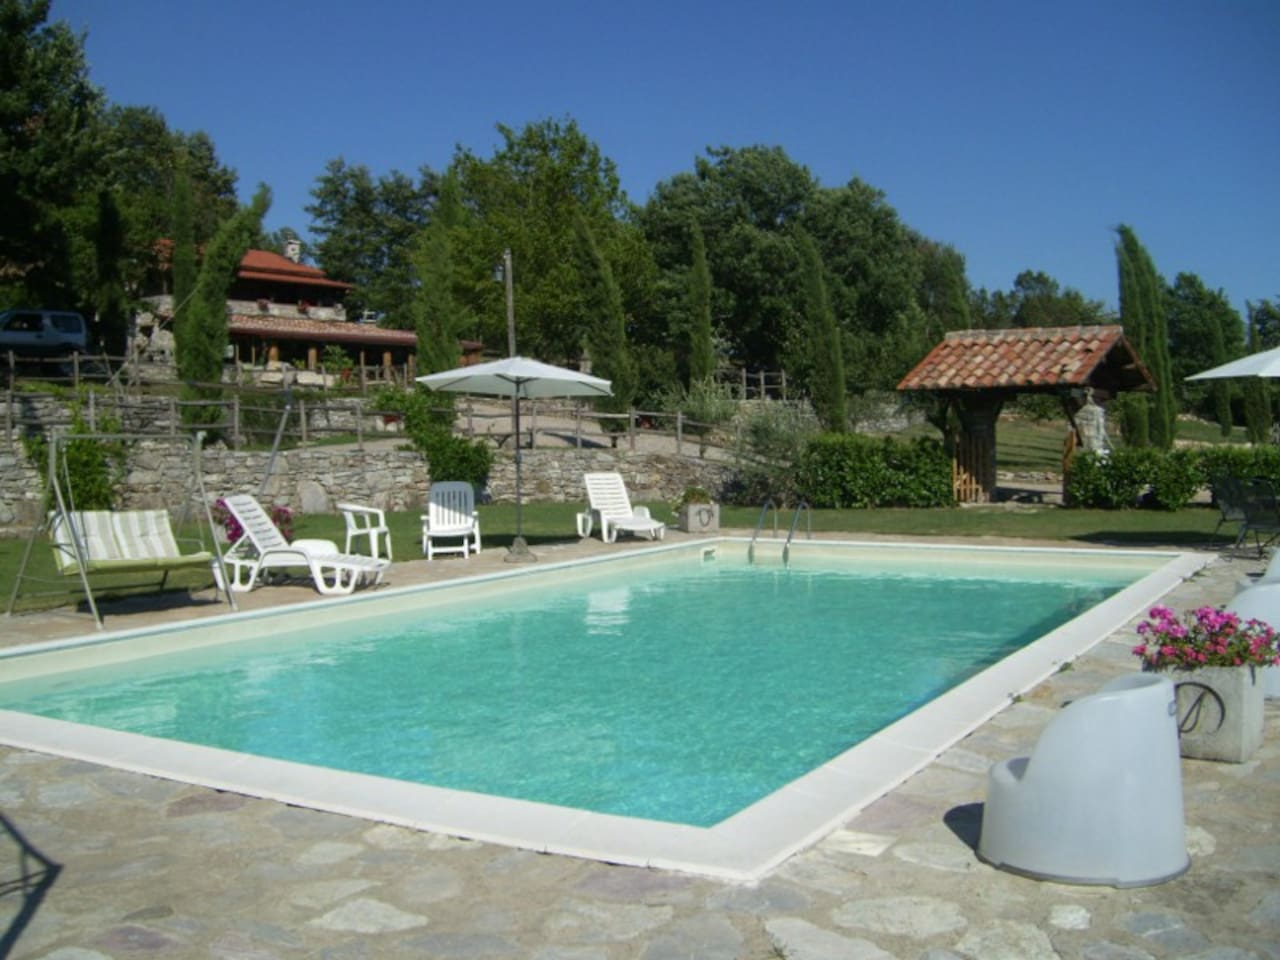 La Contea Degli Angeli agriturismo with swimming pool